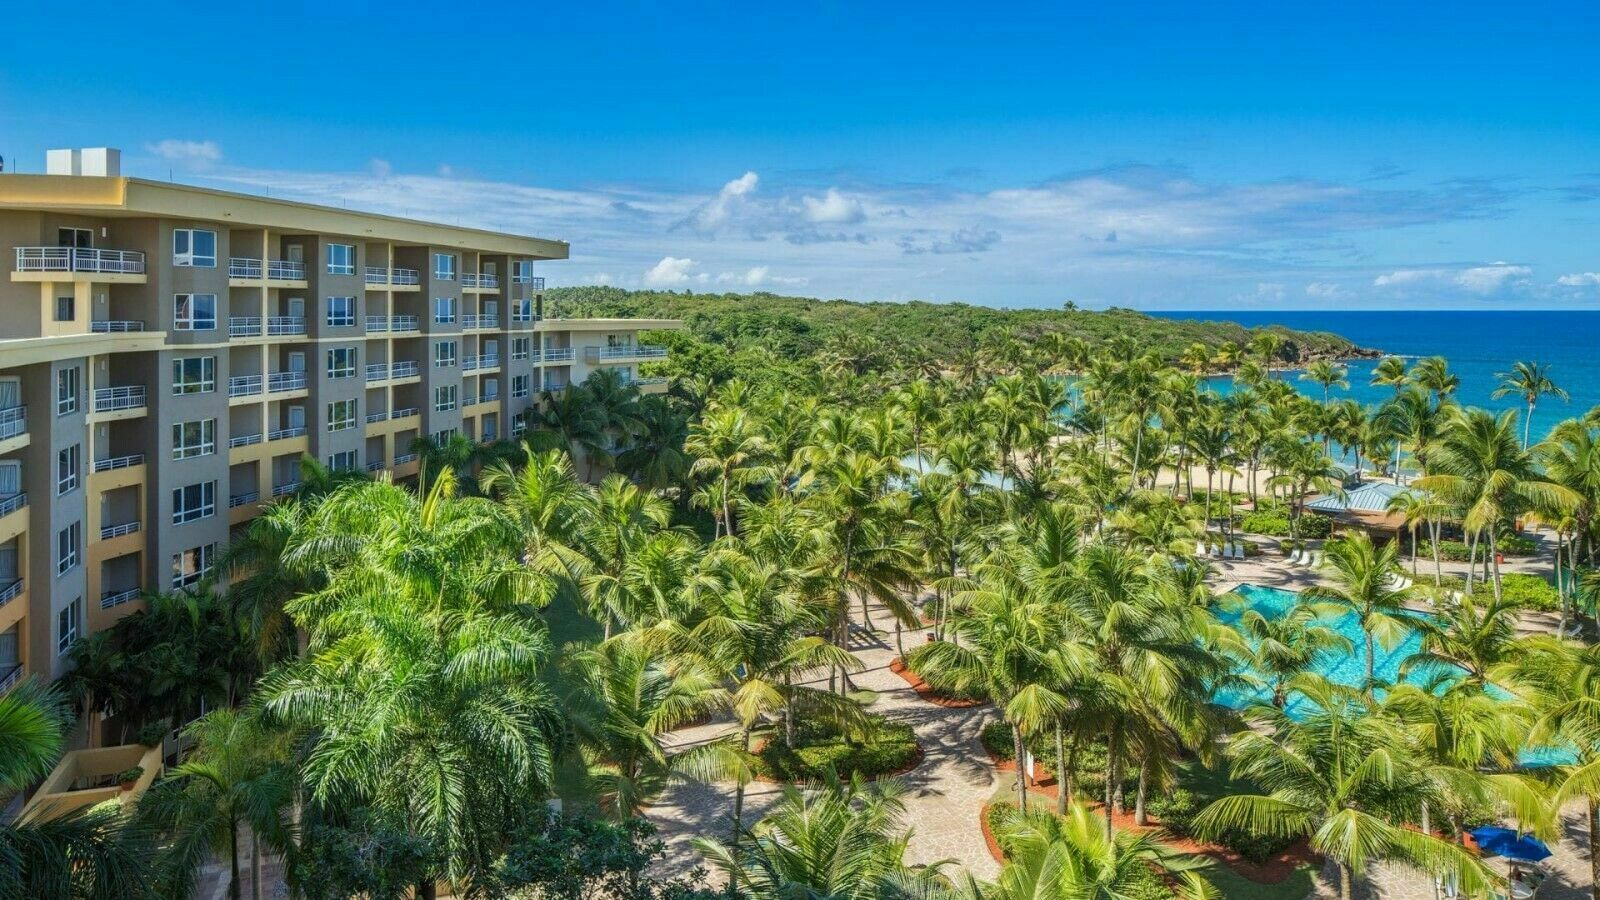 2BR/2BT HYATT HACIENDA DEL MAR DORADO / 1300 HYATT POINTS TIMESHARE DEDED - $1.00